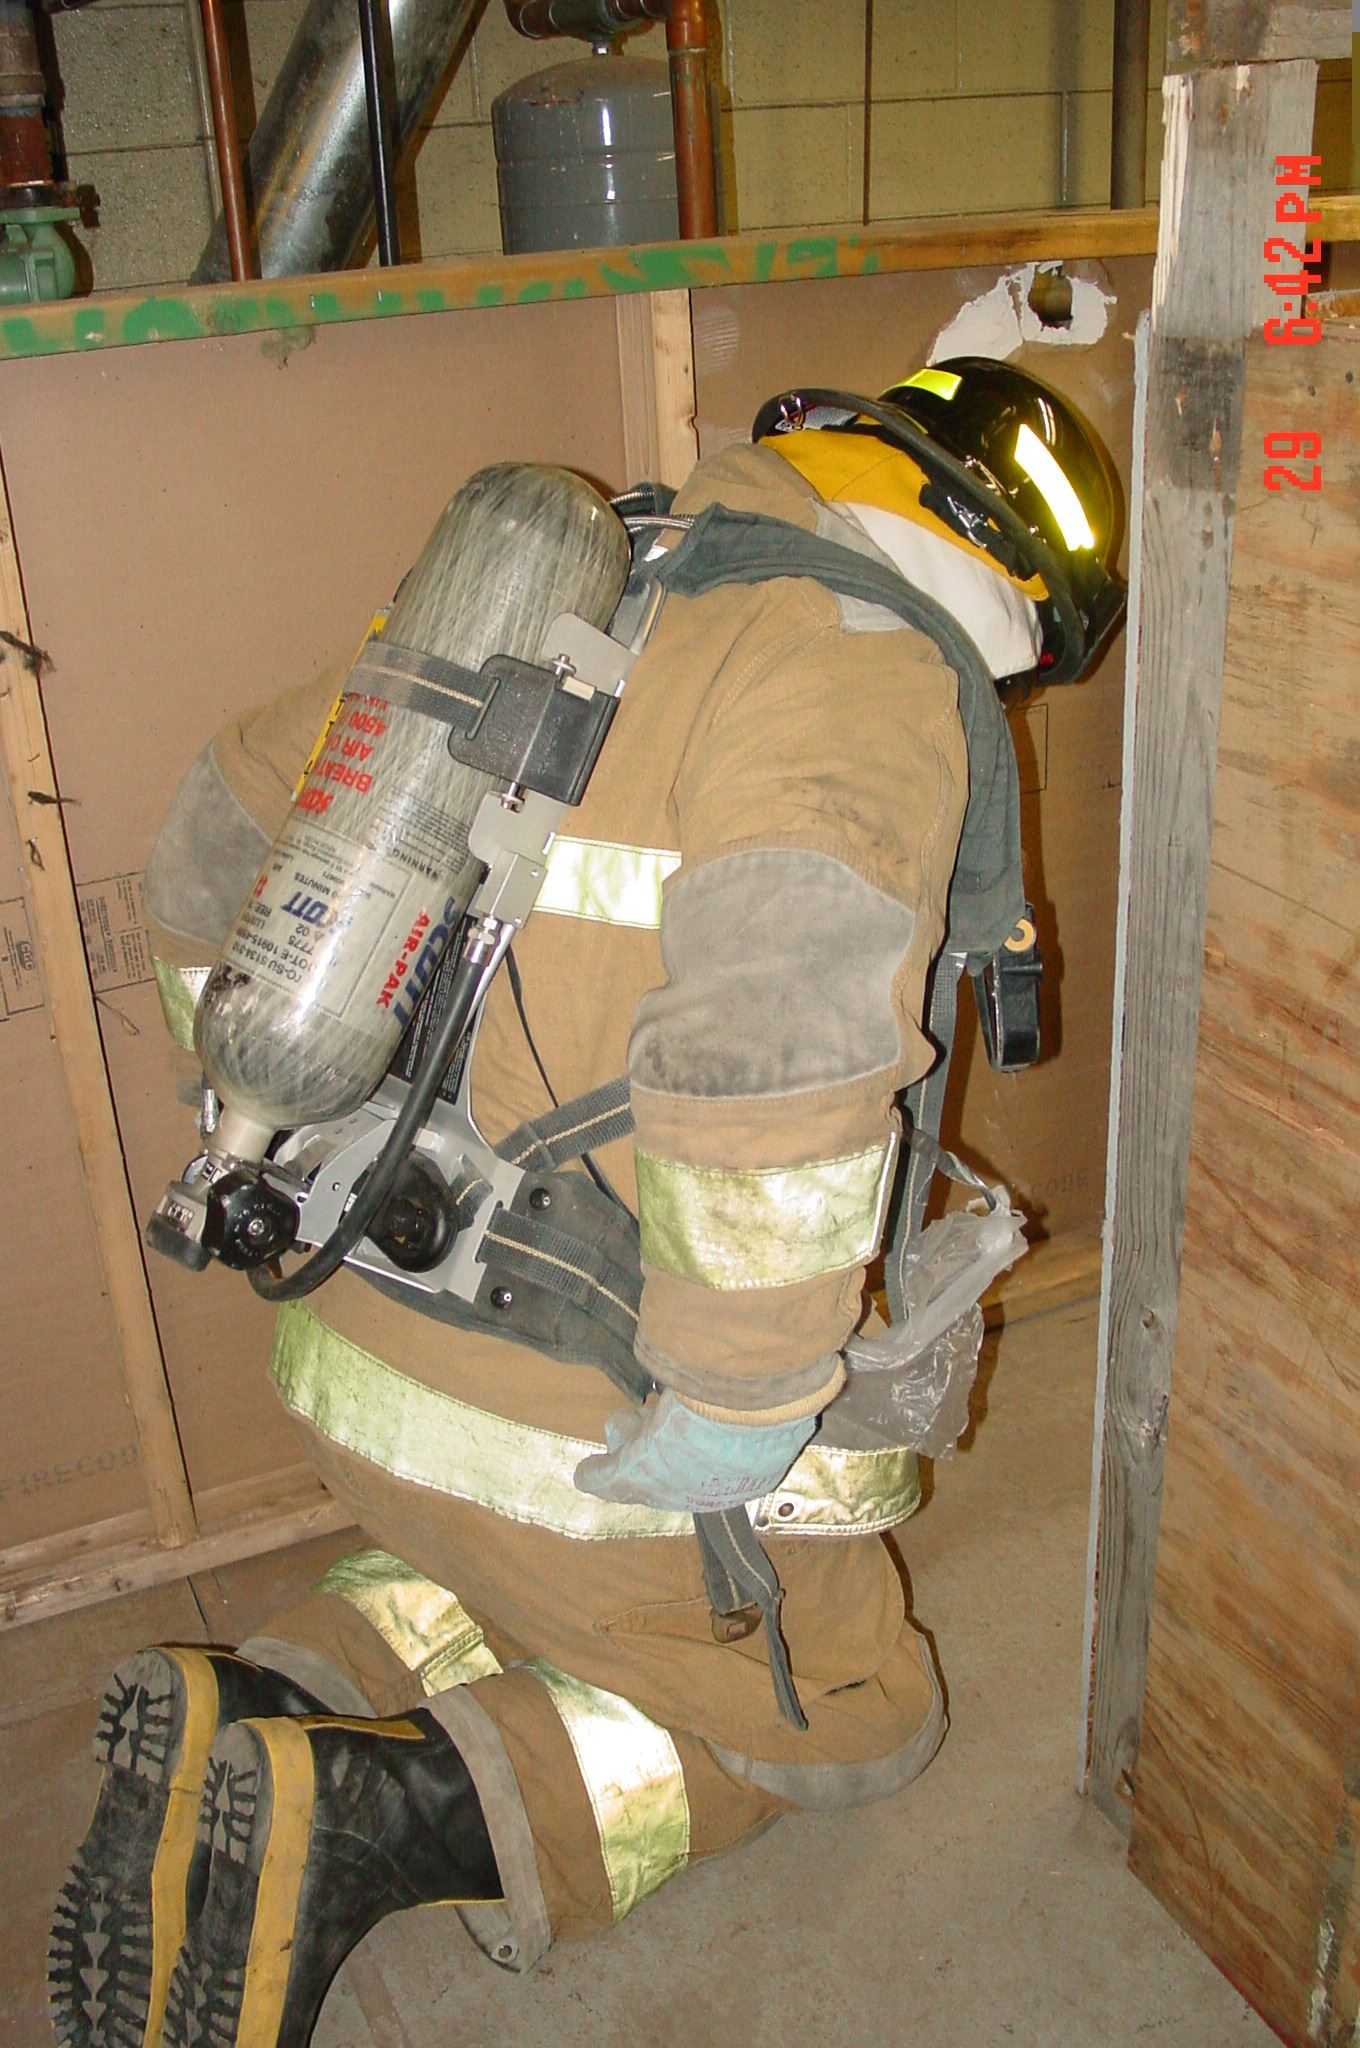 A firefighter kneeling down on his knees during a training exercise.